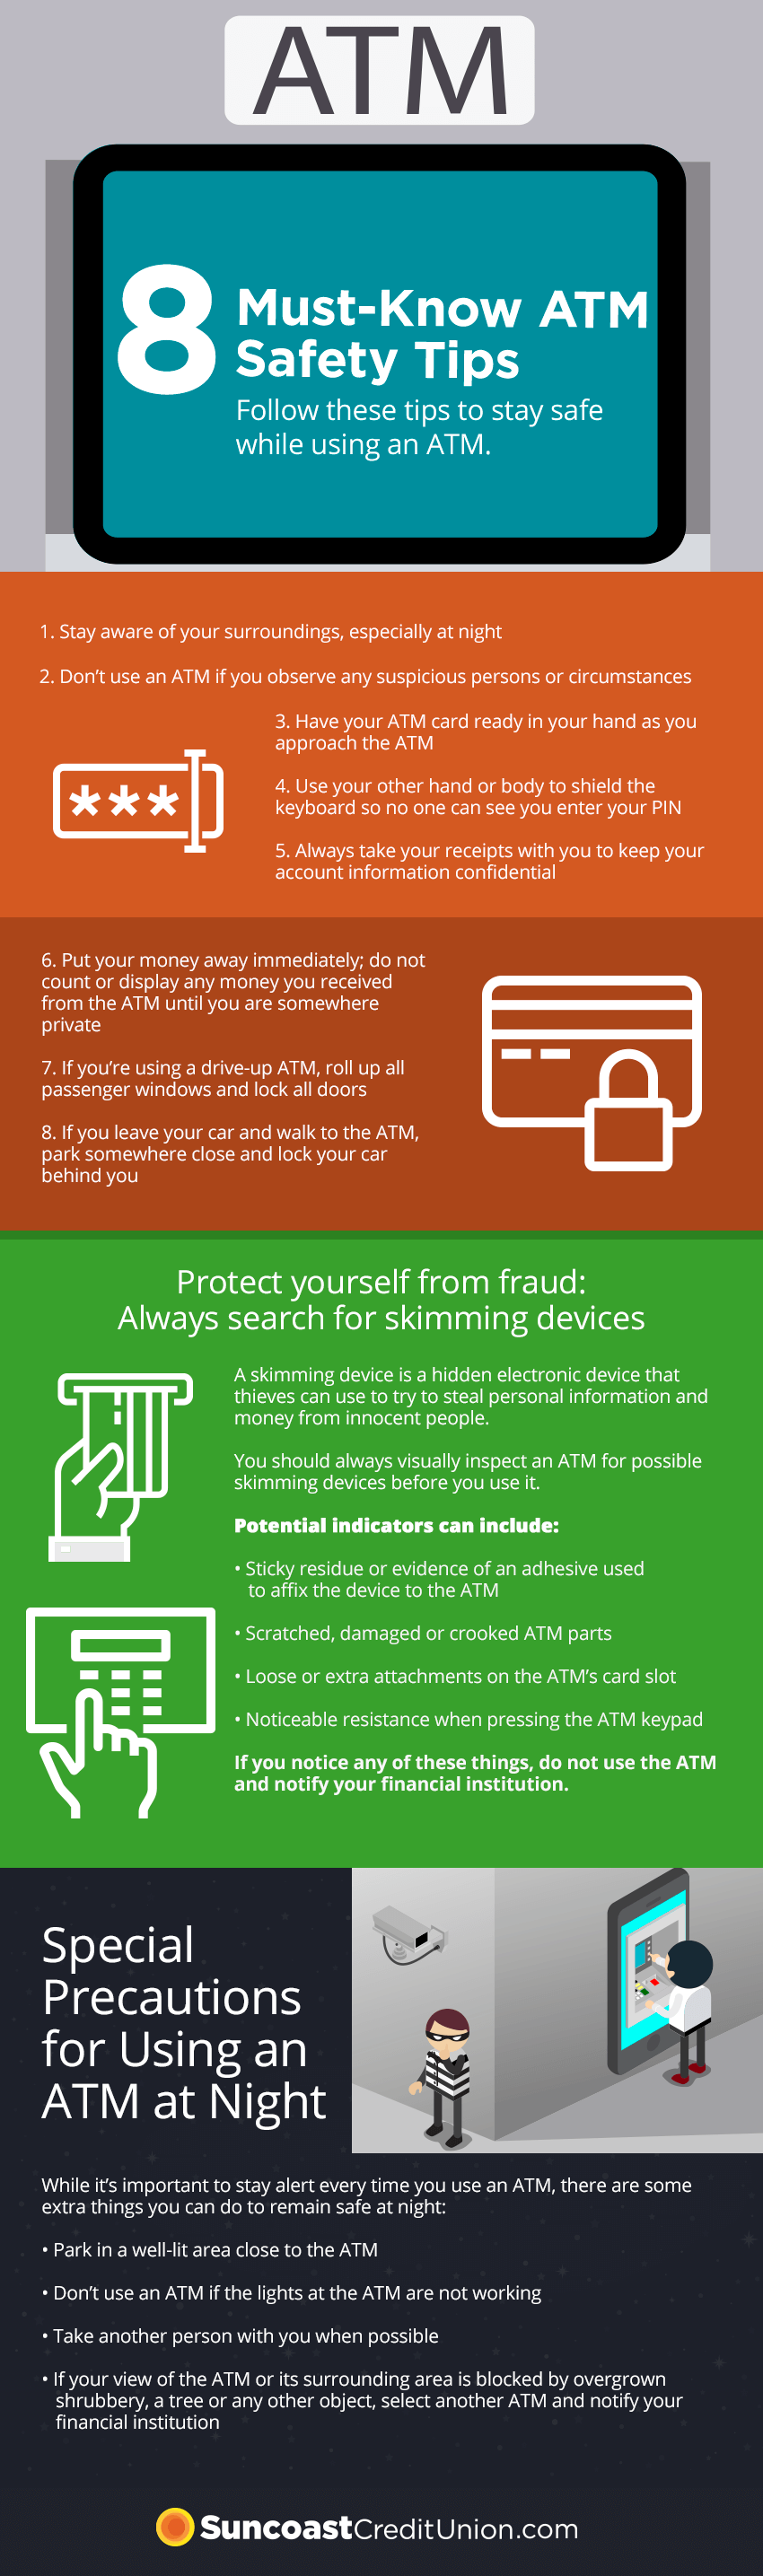 1.	Stay aware of your surroundings, especially at night 2.	Don't use an ATM if you observe any suspicious persons or circumstances 3.	Have your ATM card ready in your hand as you approach the ATM  4.	Use your other hand or body to shield the keyboard so no one can see you enter your PIN 5.	Always take your receipts with you to keep your account information confidential 6.	Put your money away immediately; do not count or display any money you received from the ATM until you are somewhere private 7.	If you're using a drive-up ATM, roll up all passenger windows and lock all doors  8.	If you leave your car and walk to the ATM, park somewhere close and lock your car behind you